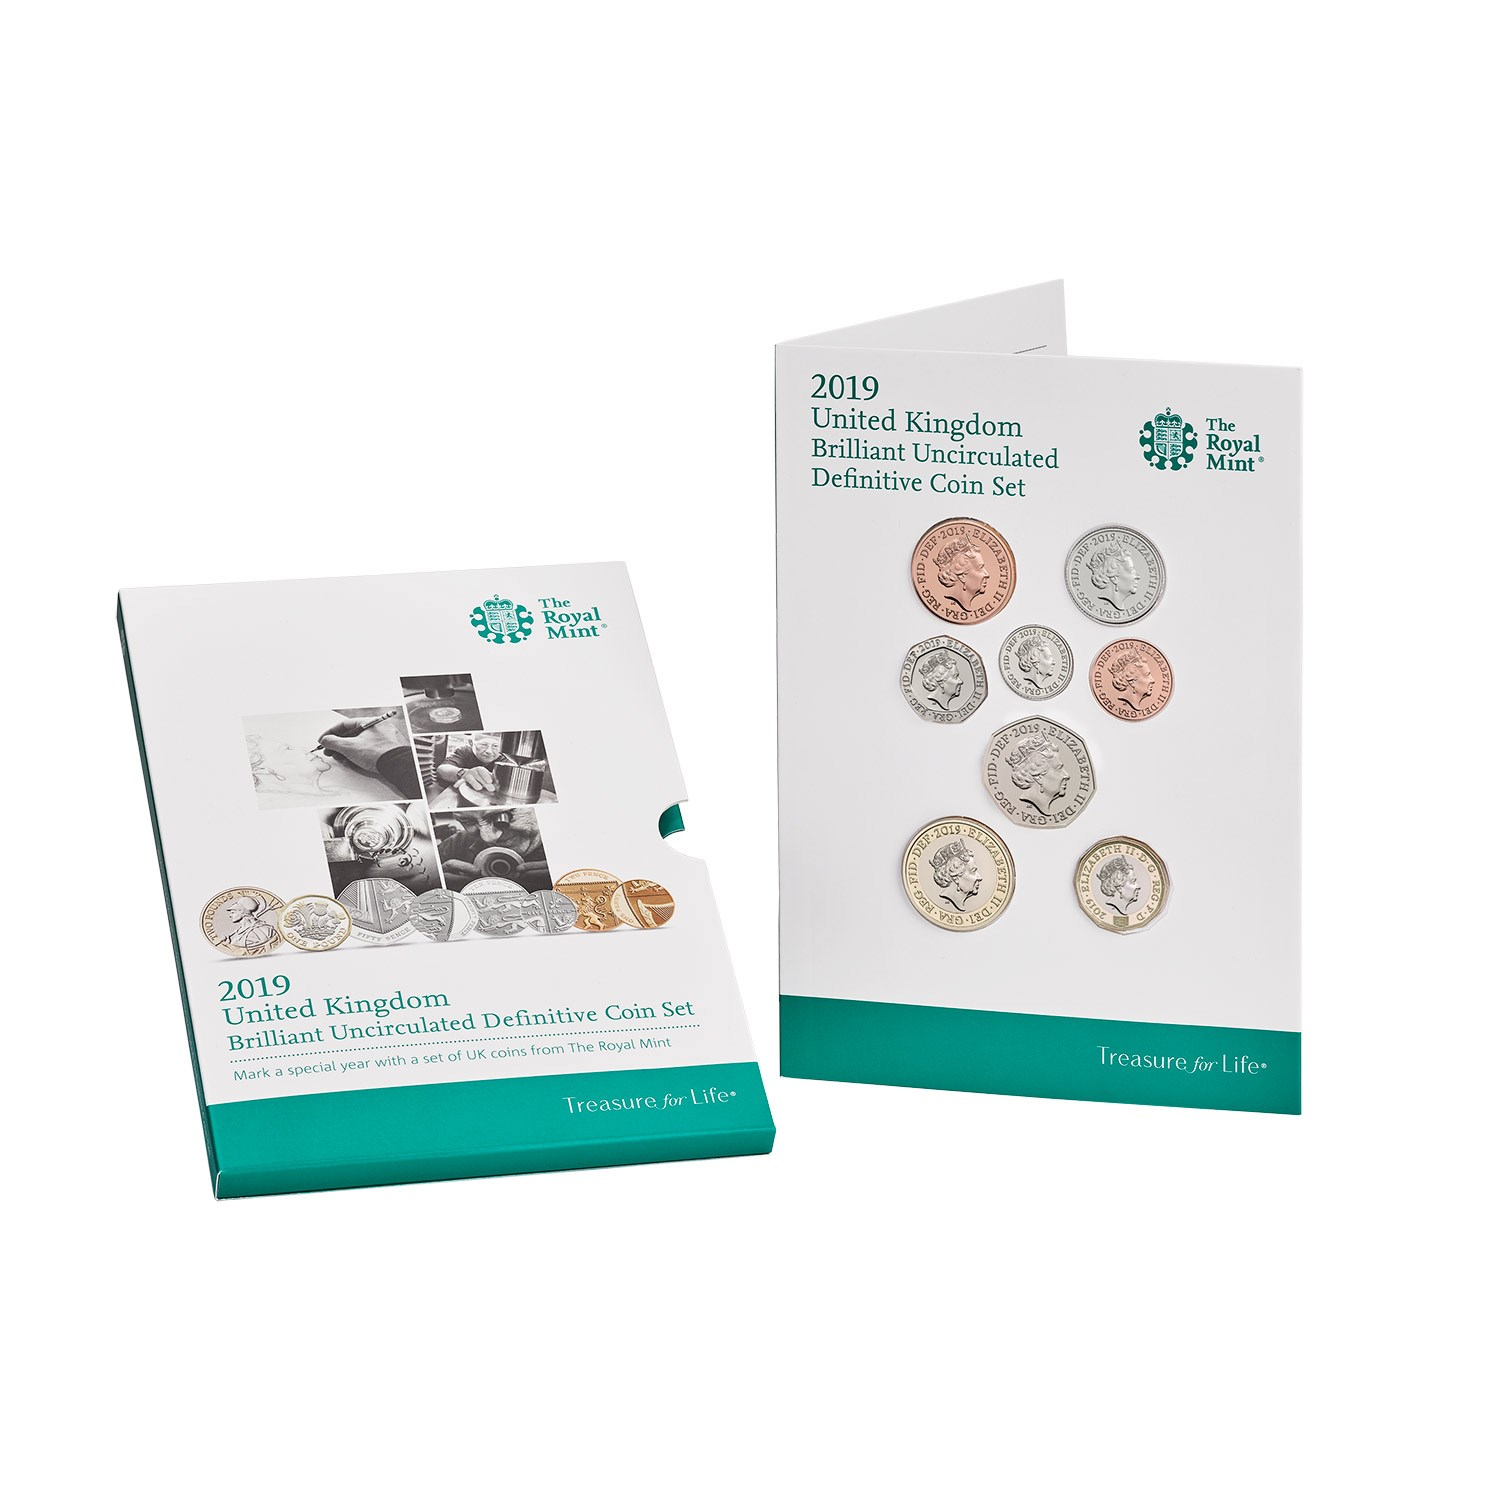 2019 United Kingdom Definitive Brilliant Uncirculated Coin Set